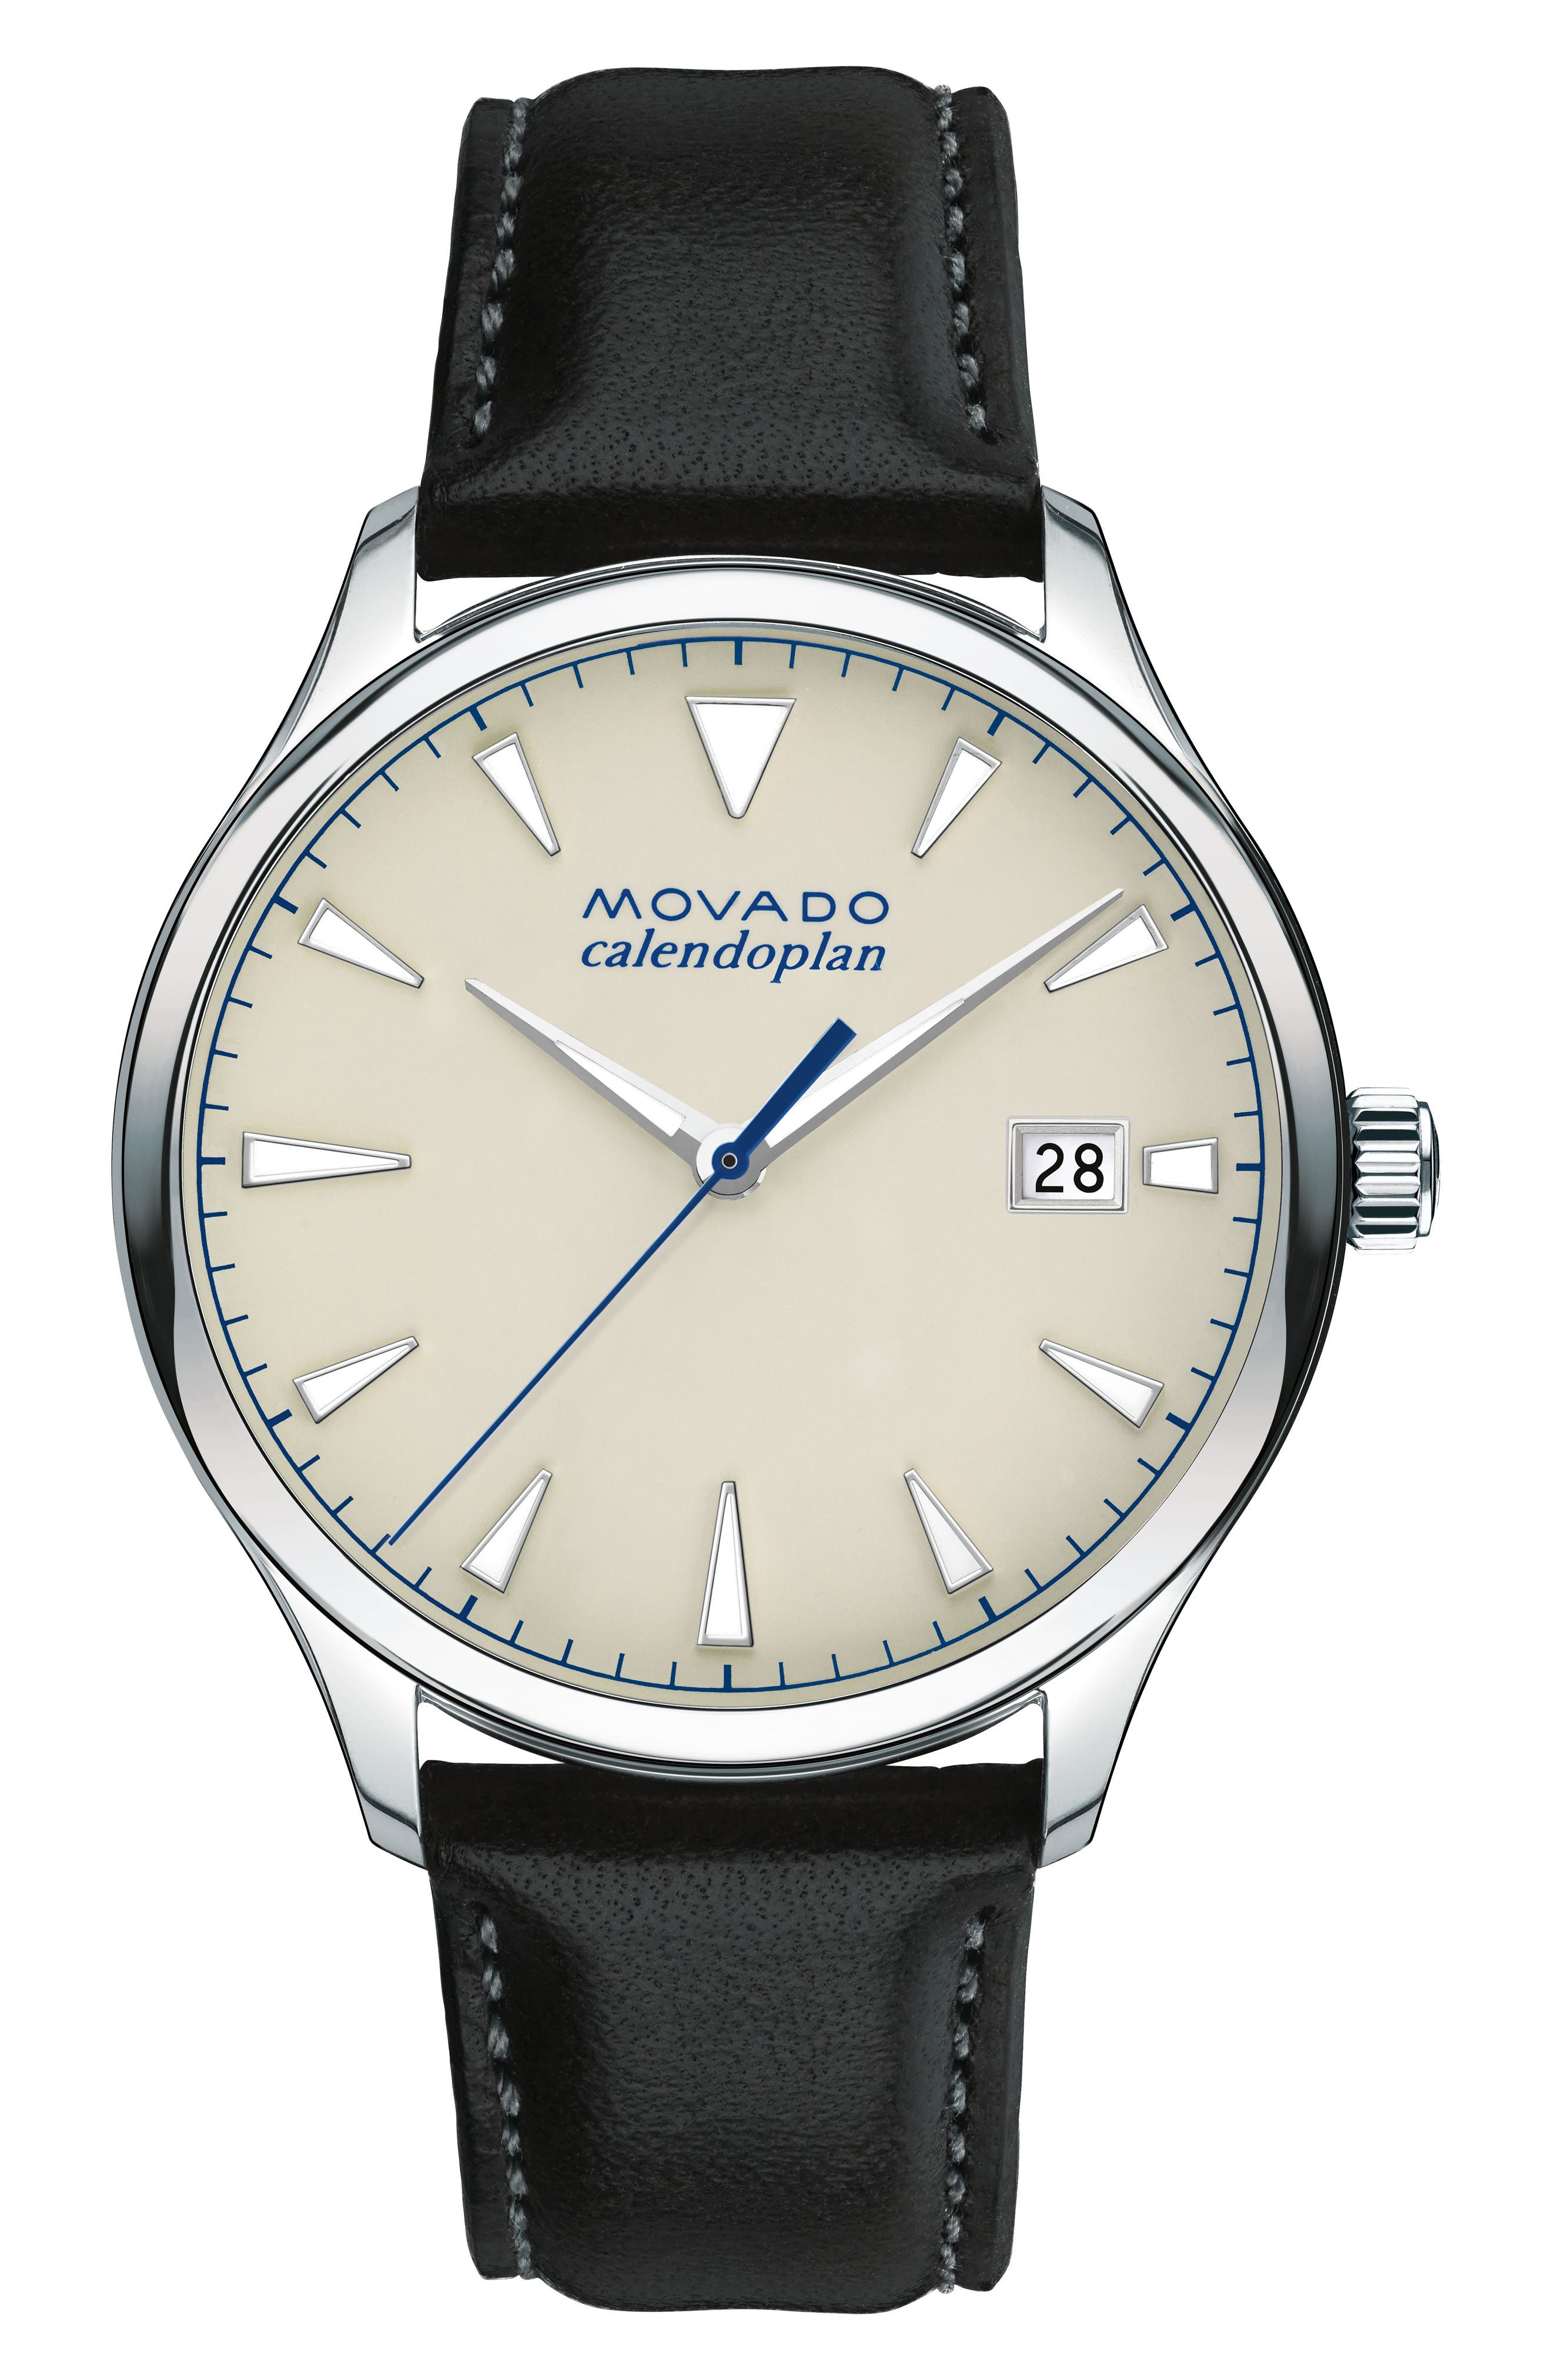 Movado Heritage Calendoplan Leather Strap Watch, 40mm